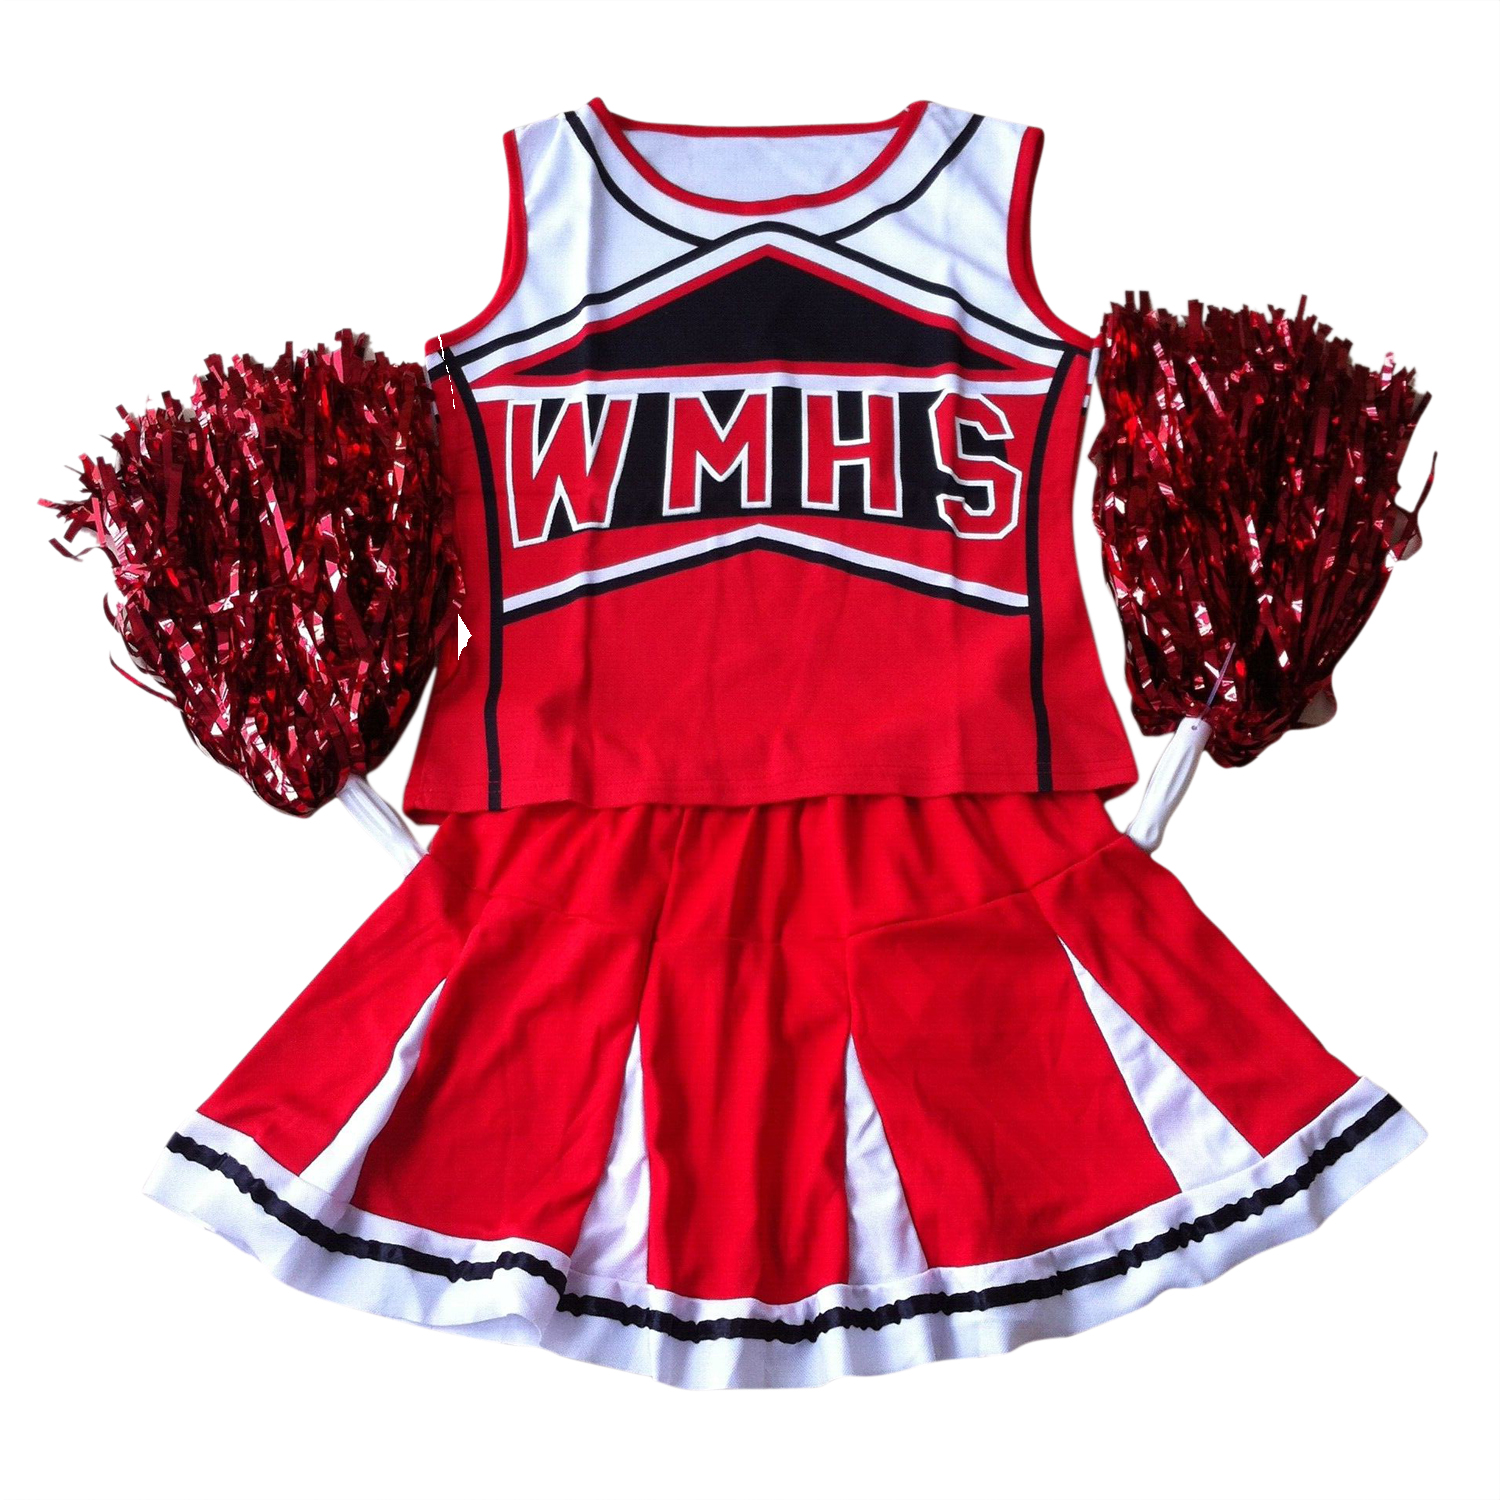 JHO-Tank top Petticoat Pom cheerleader cheer leaders S (30-32) 2 piece suit new red costume ...